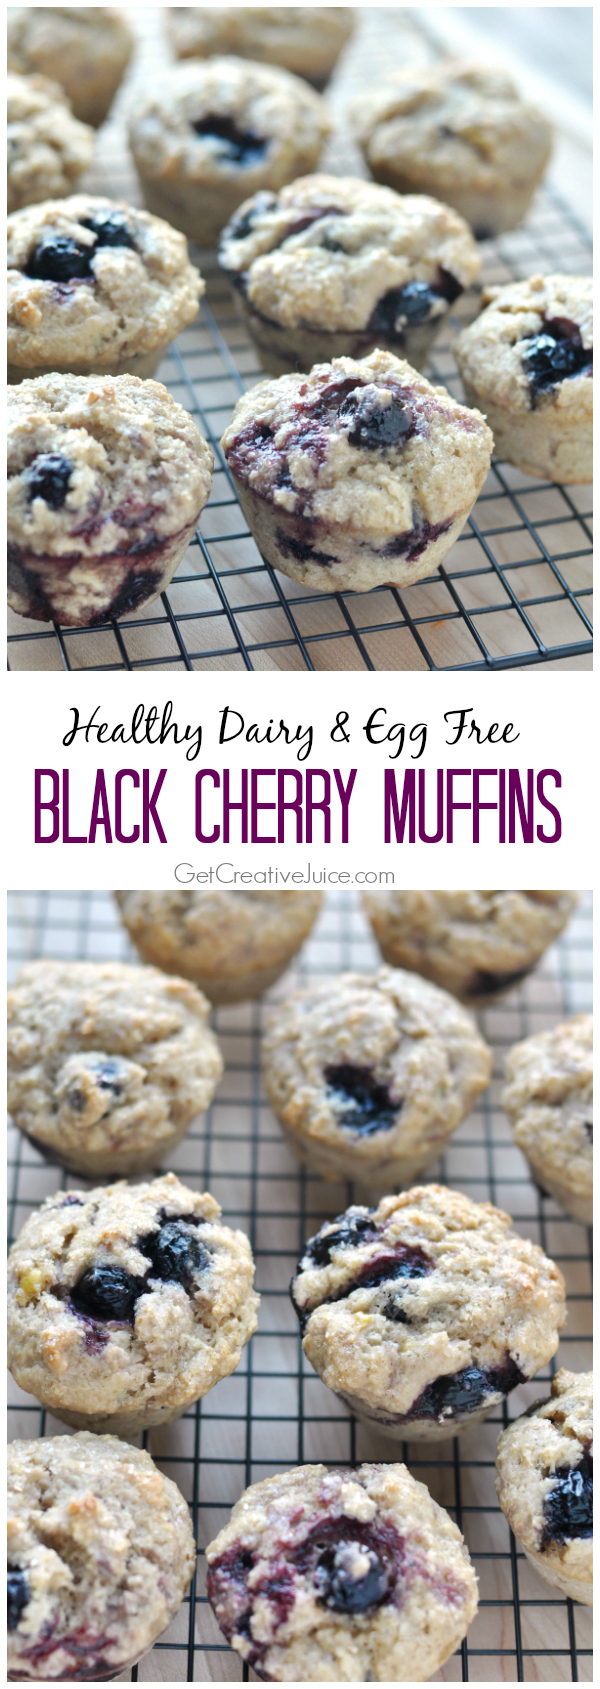 Healthy Dairy & Egg Free Black Cherry Muffins